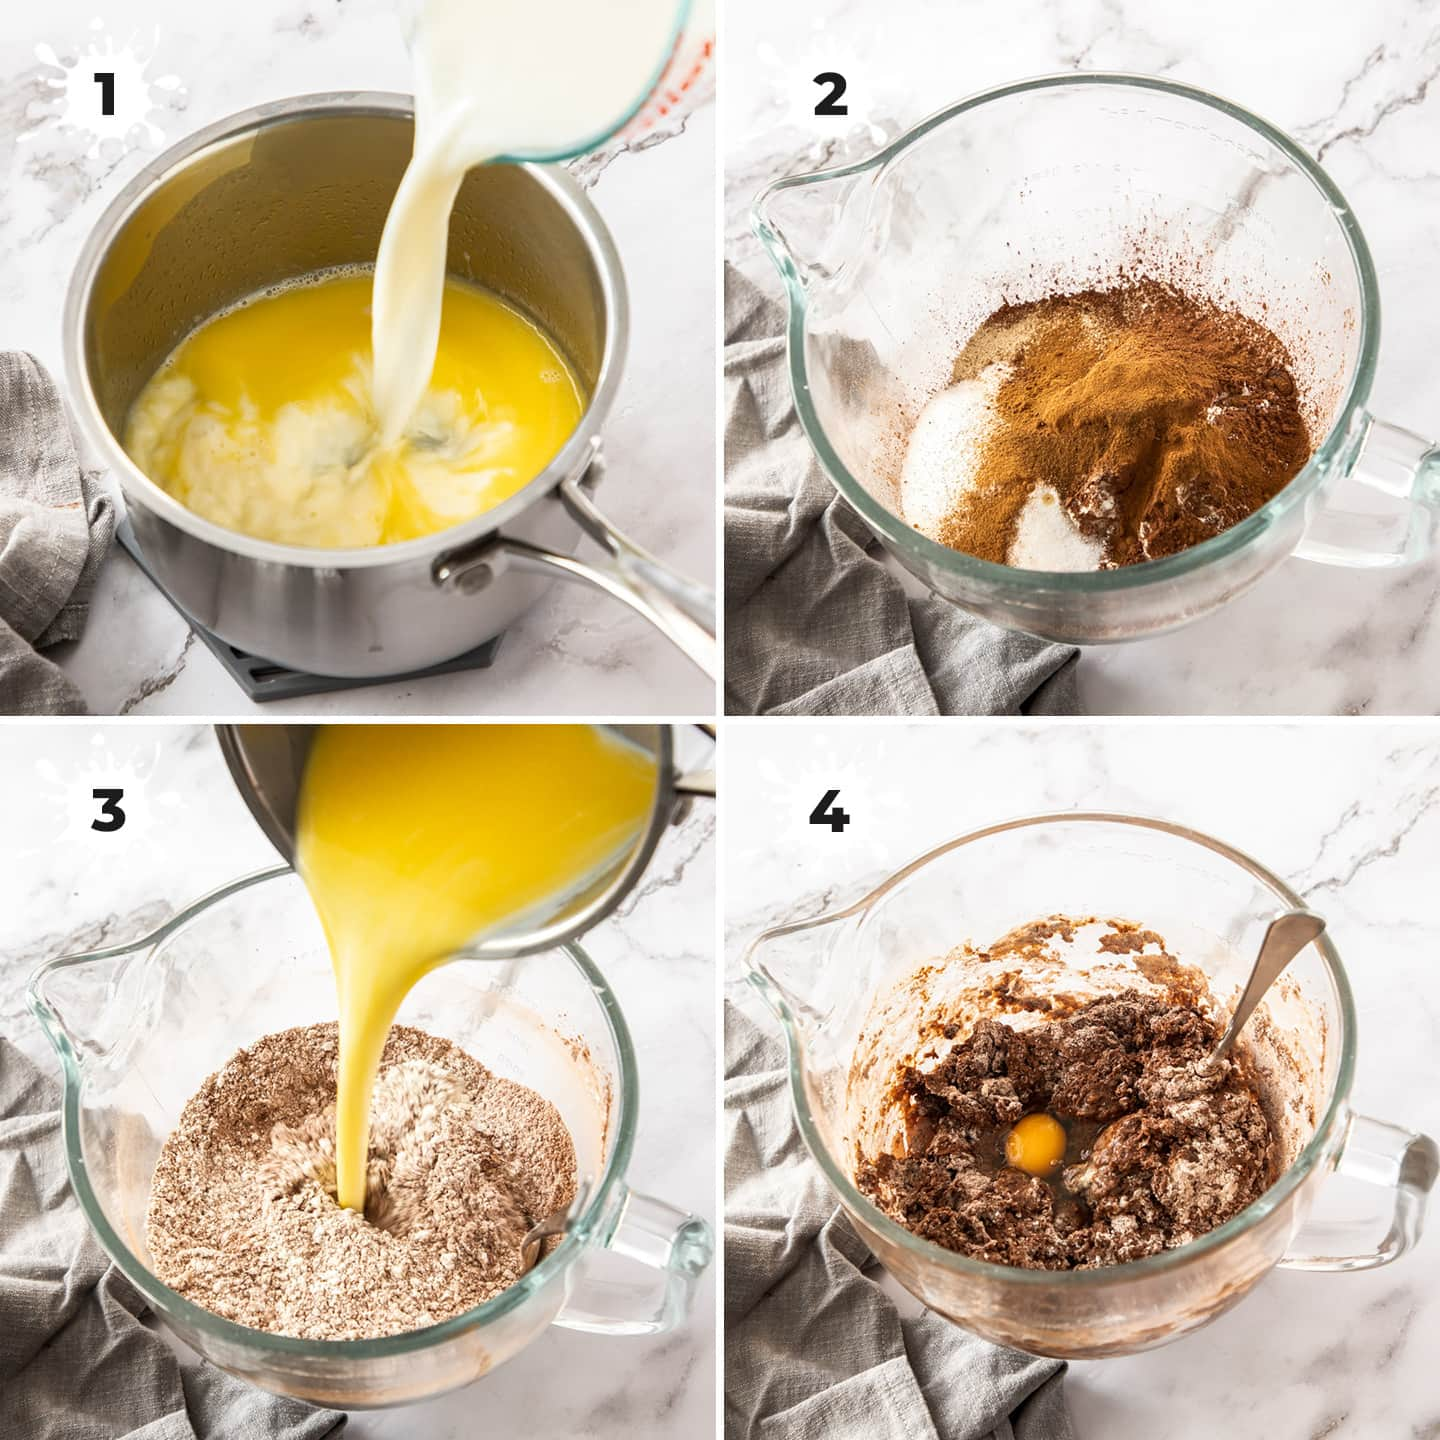 4 images showing how to prepare chocolate hot cross bun dough.